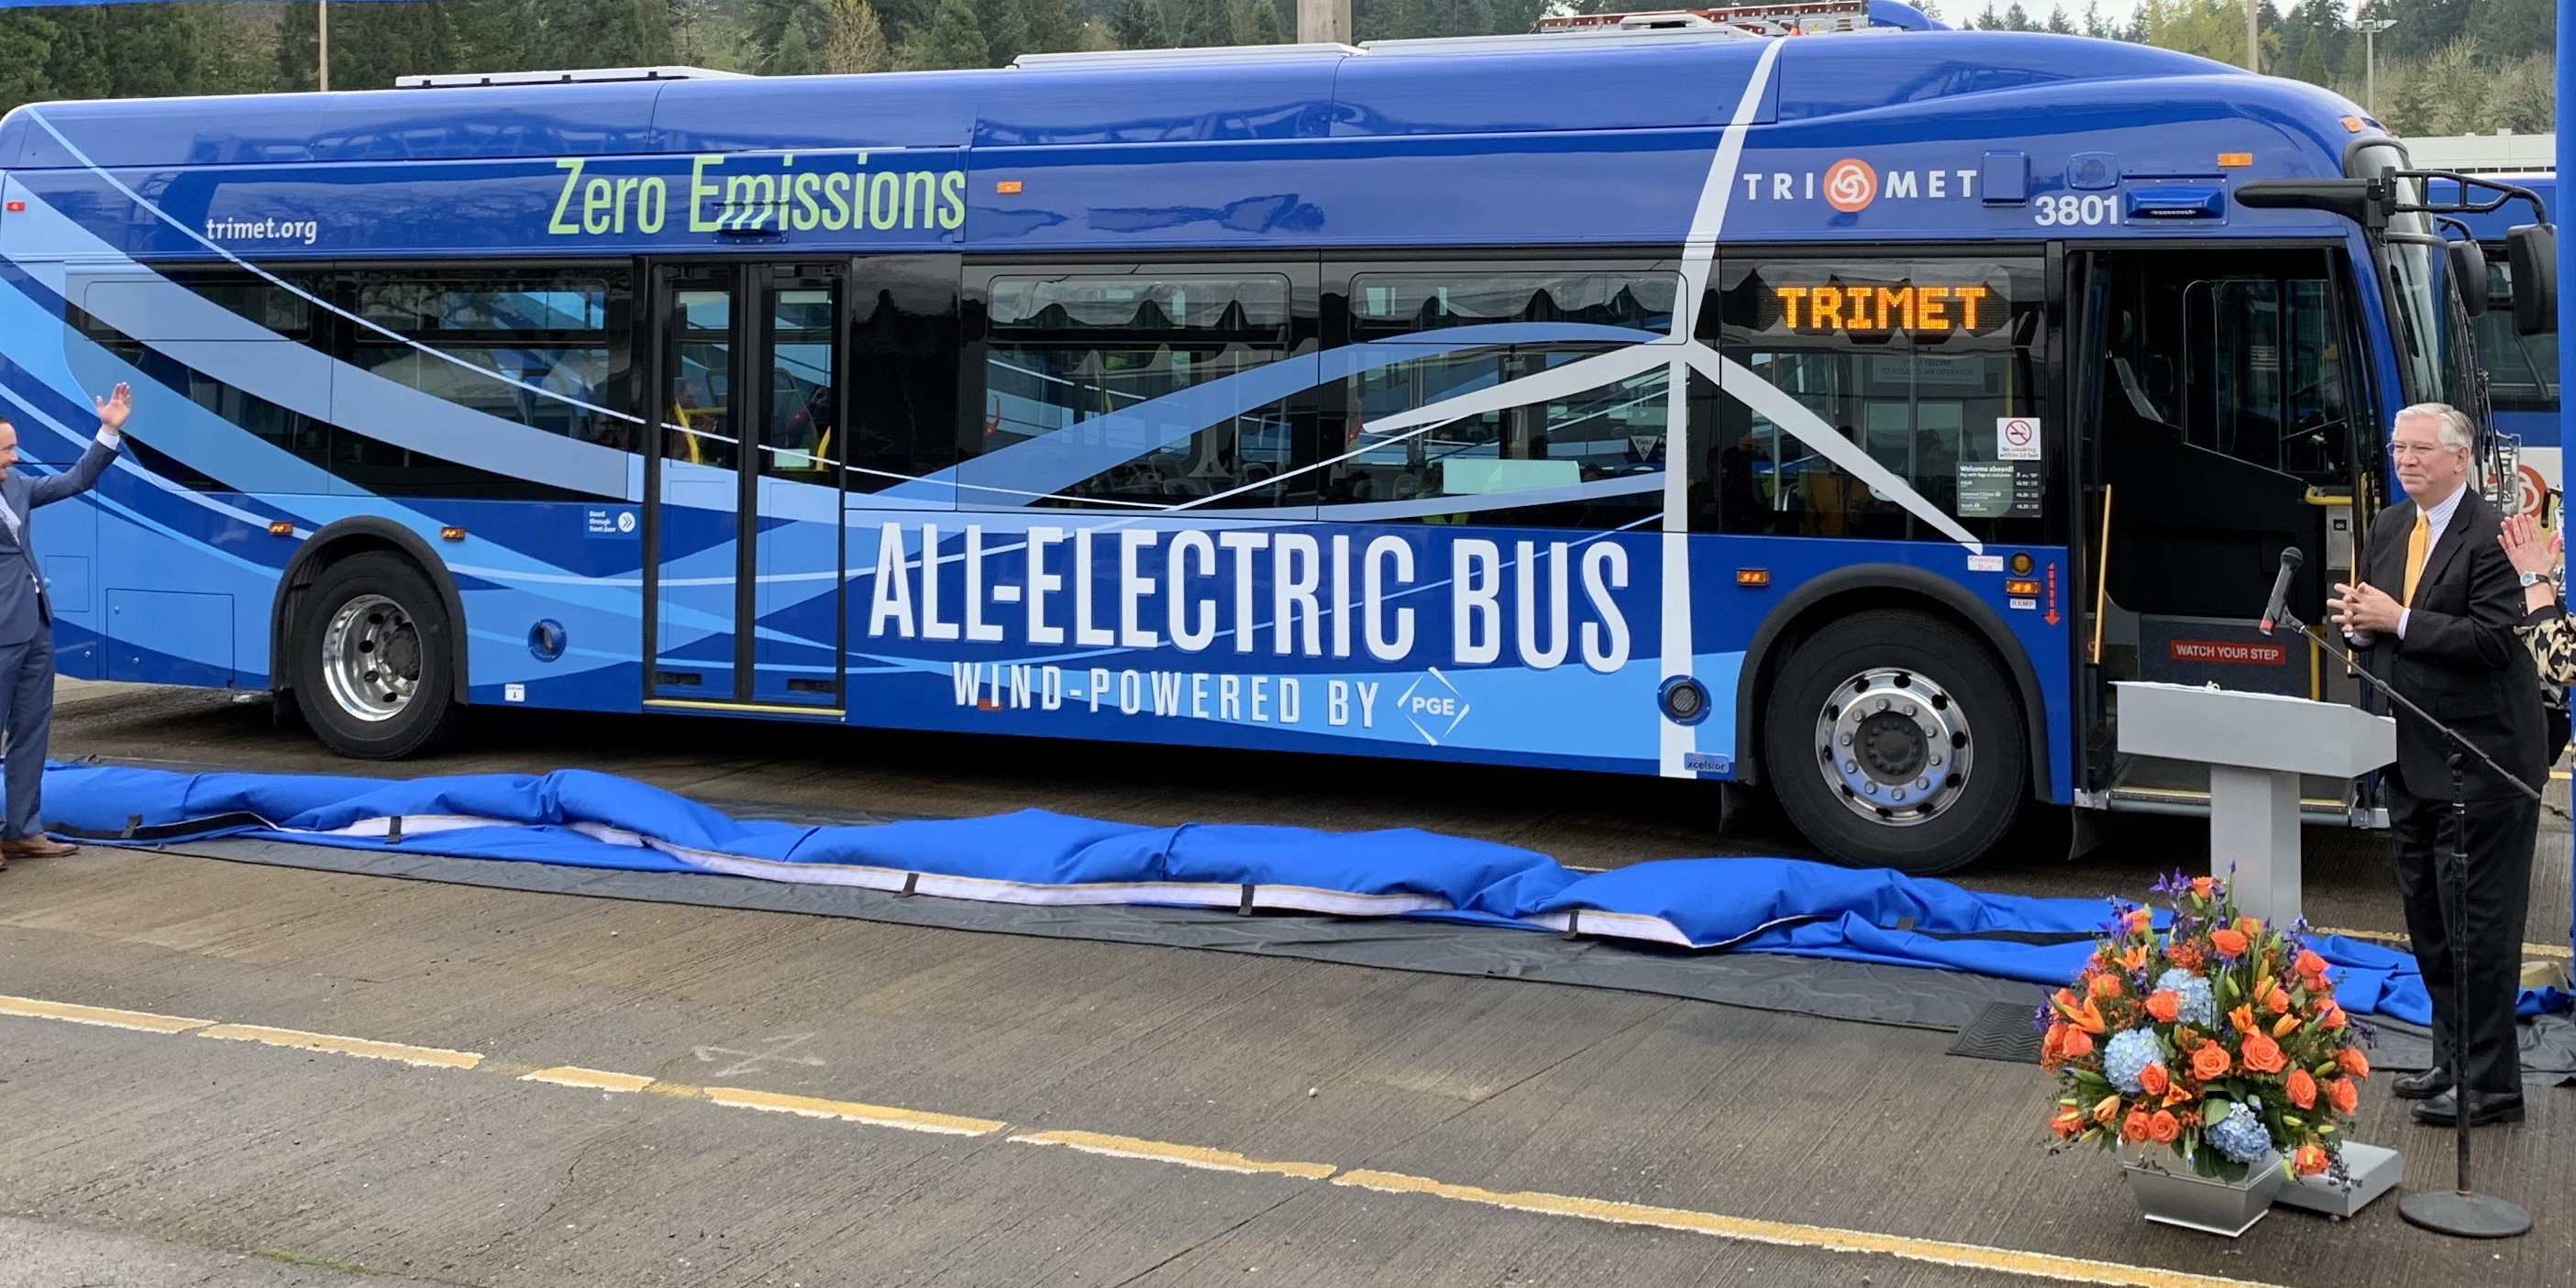 electrek.co - Phil Dzikiy - Portland's new electric buses run on wind energy, a first in US transit